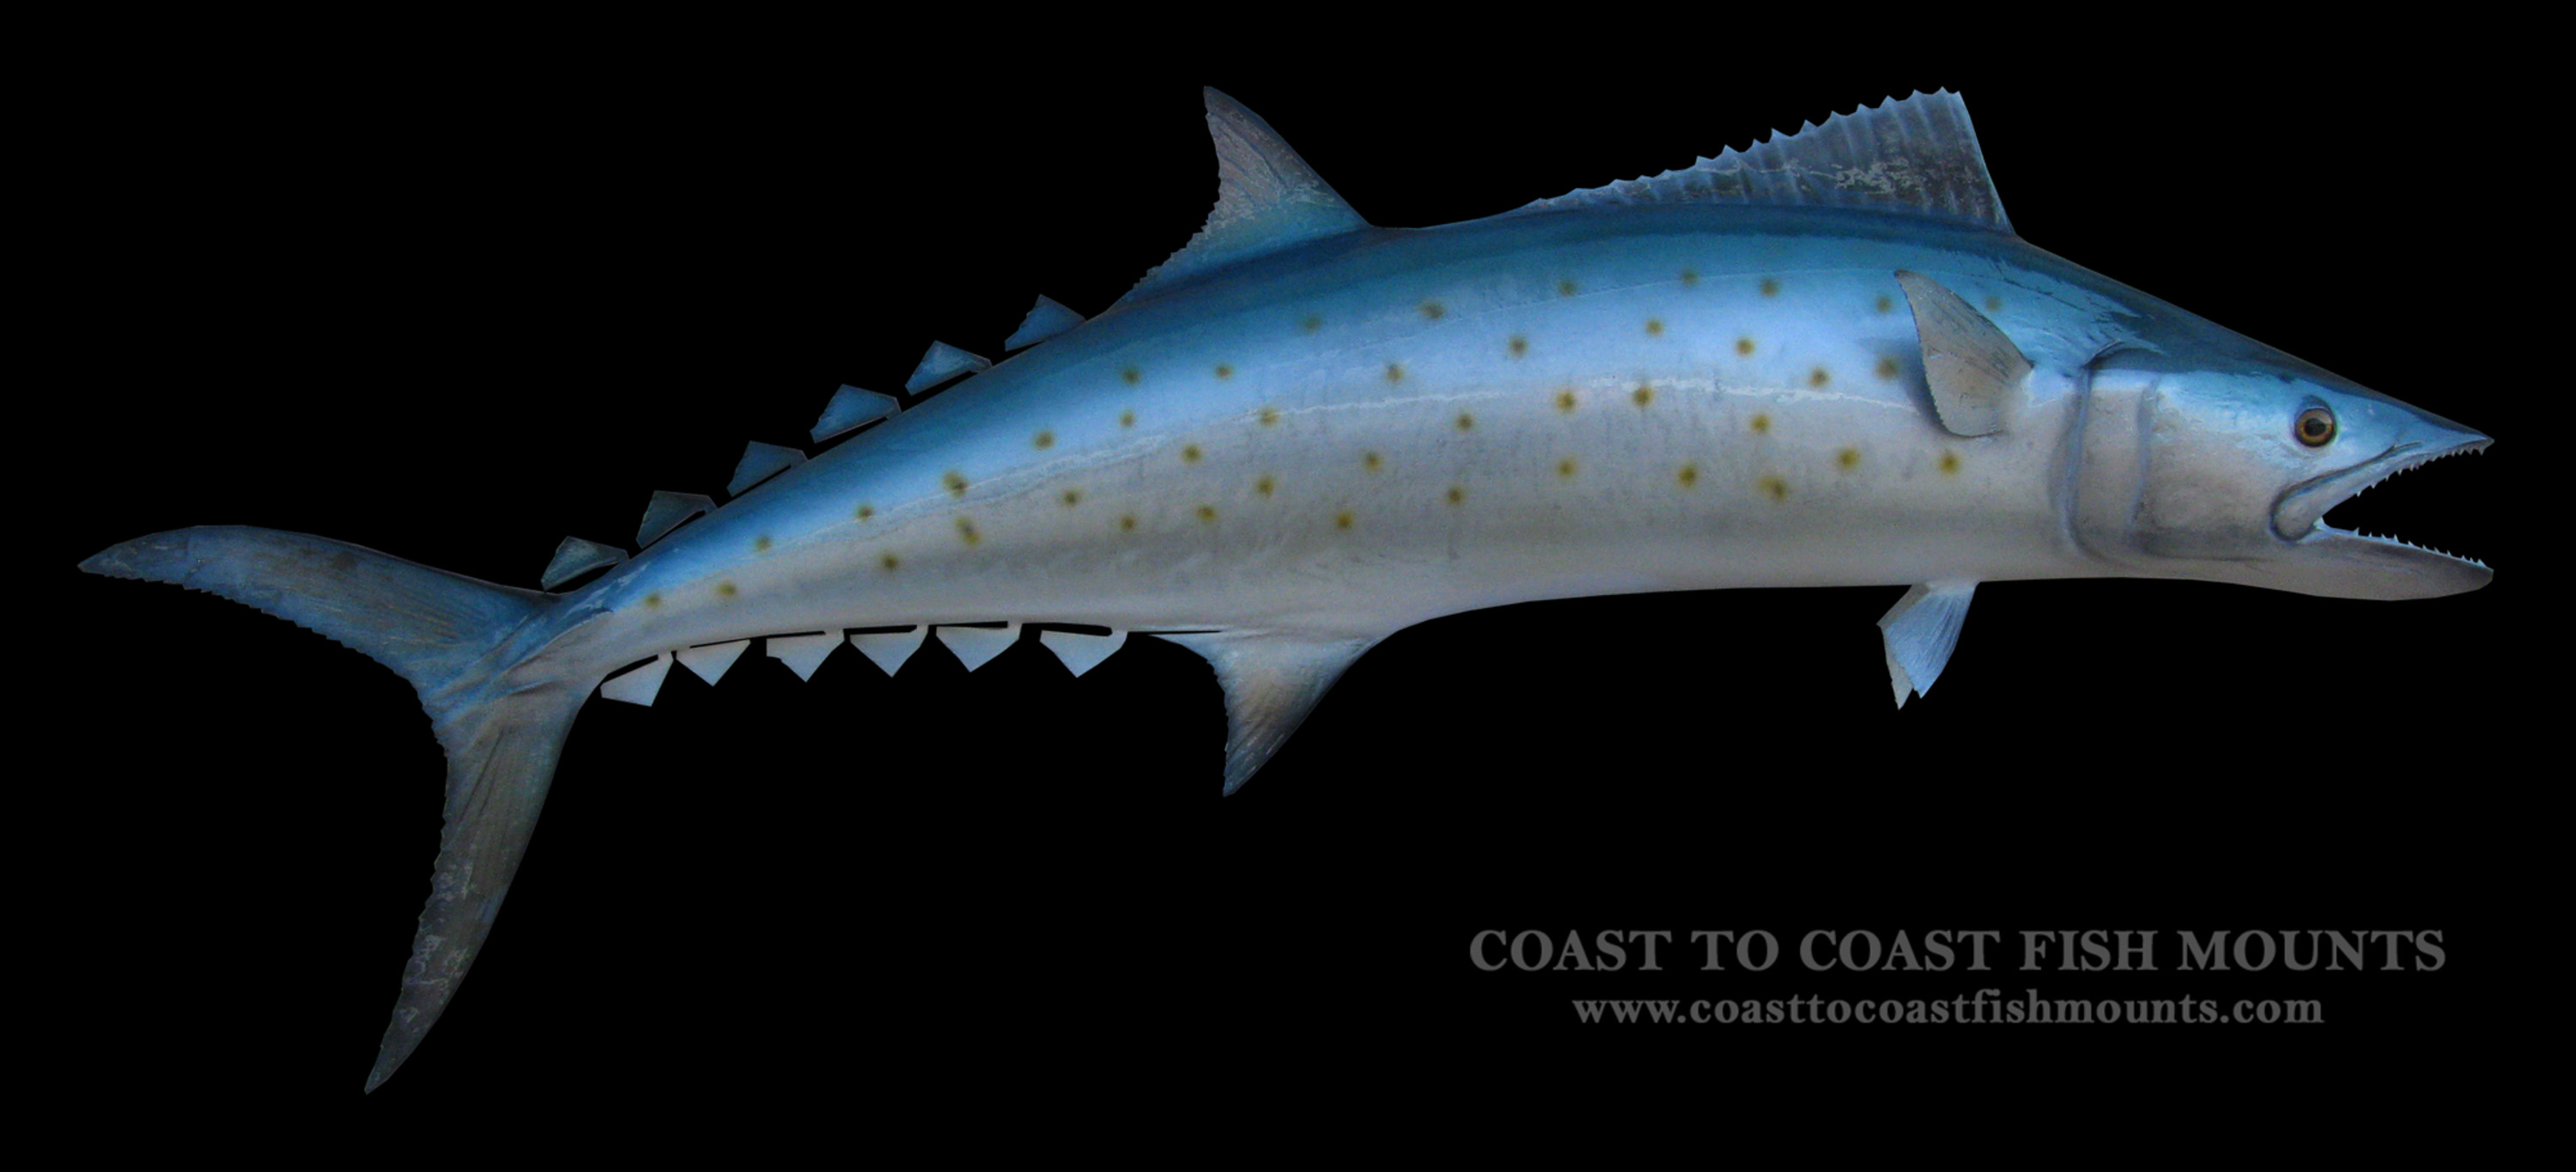 Spanish mackerel fish mount and fish replicas coast to coast for Spanish mackerel fish